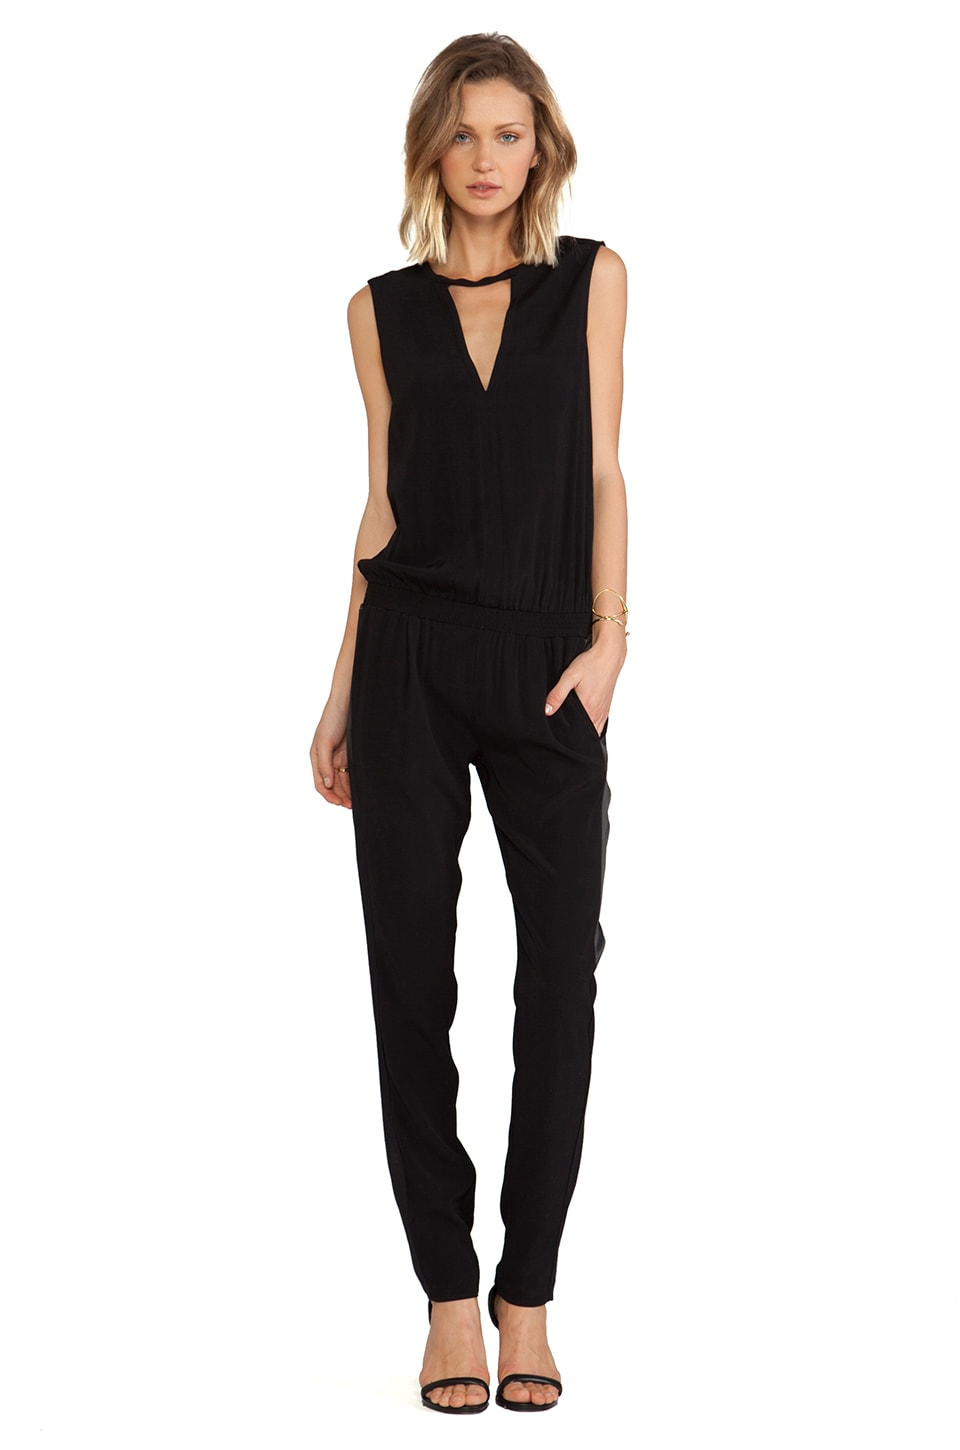 Alexis Zina V Neck Jumpsuit in Black